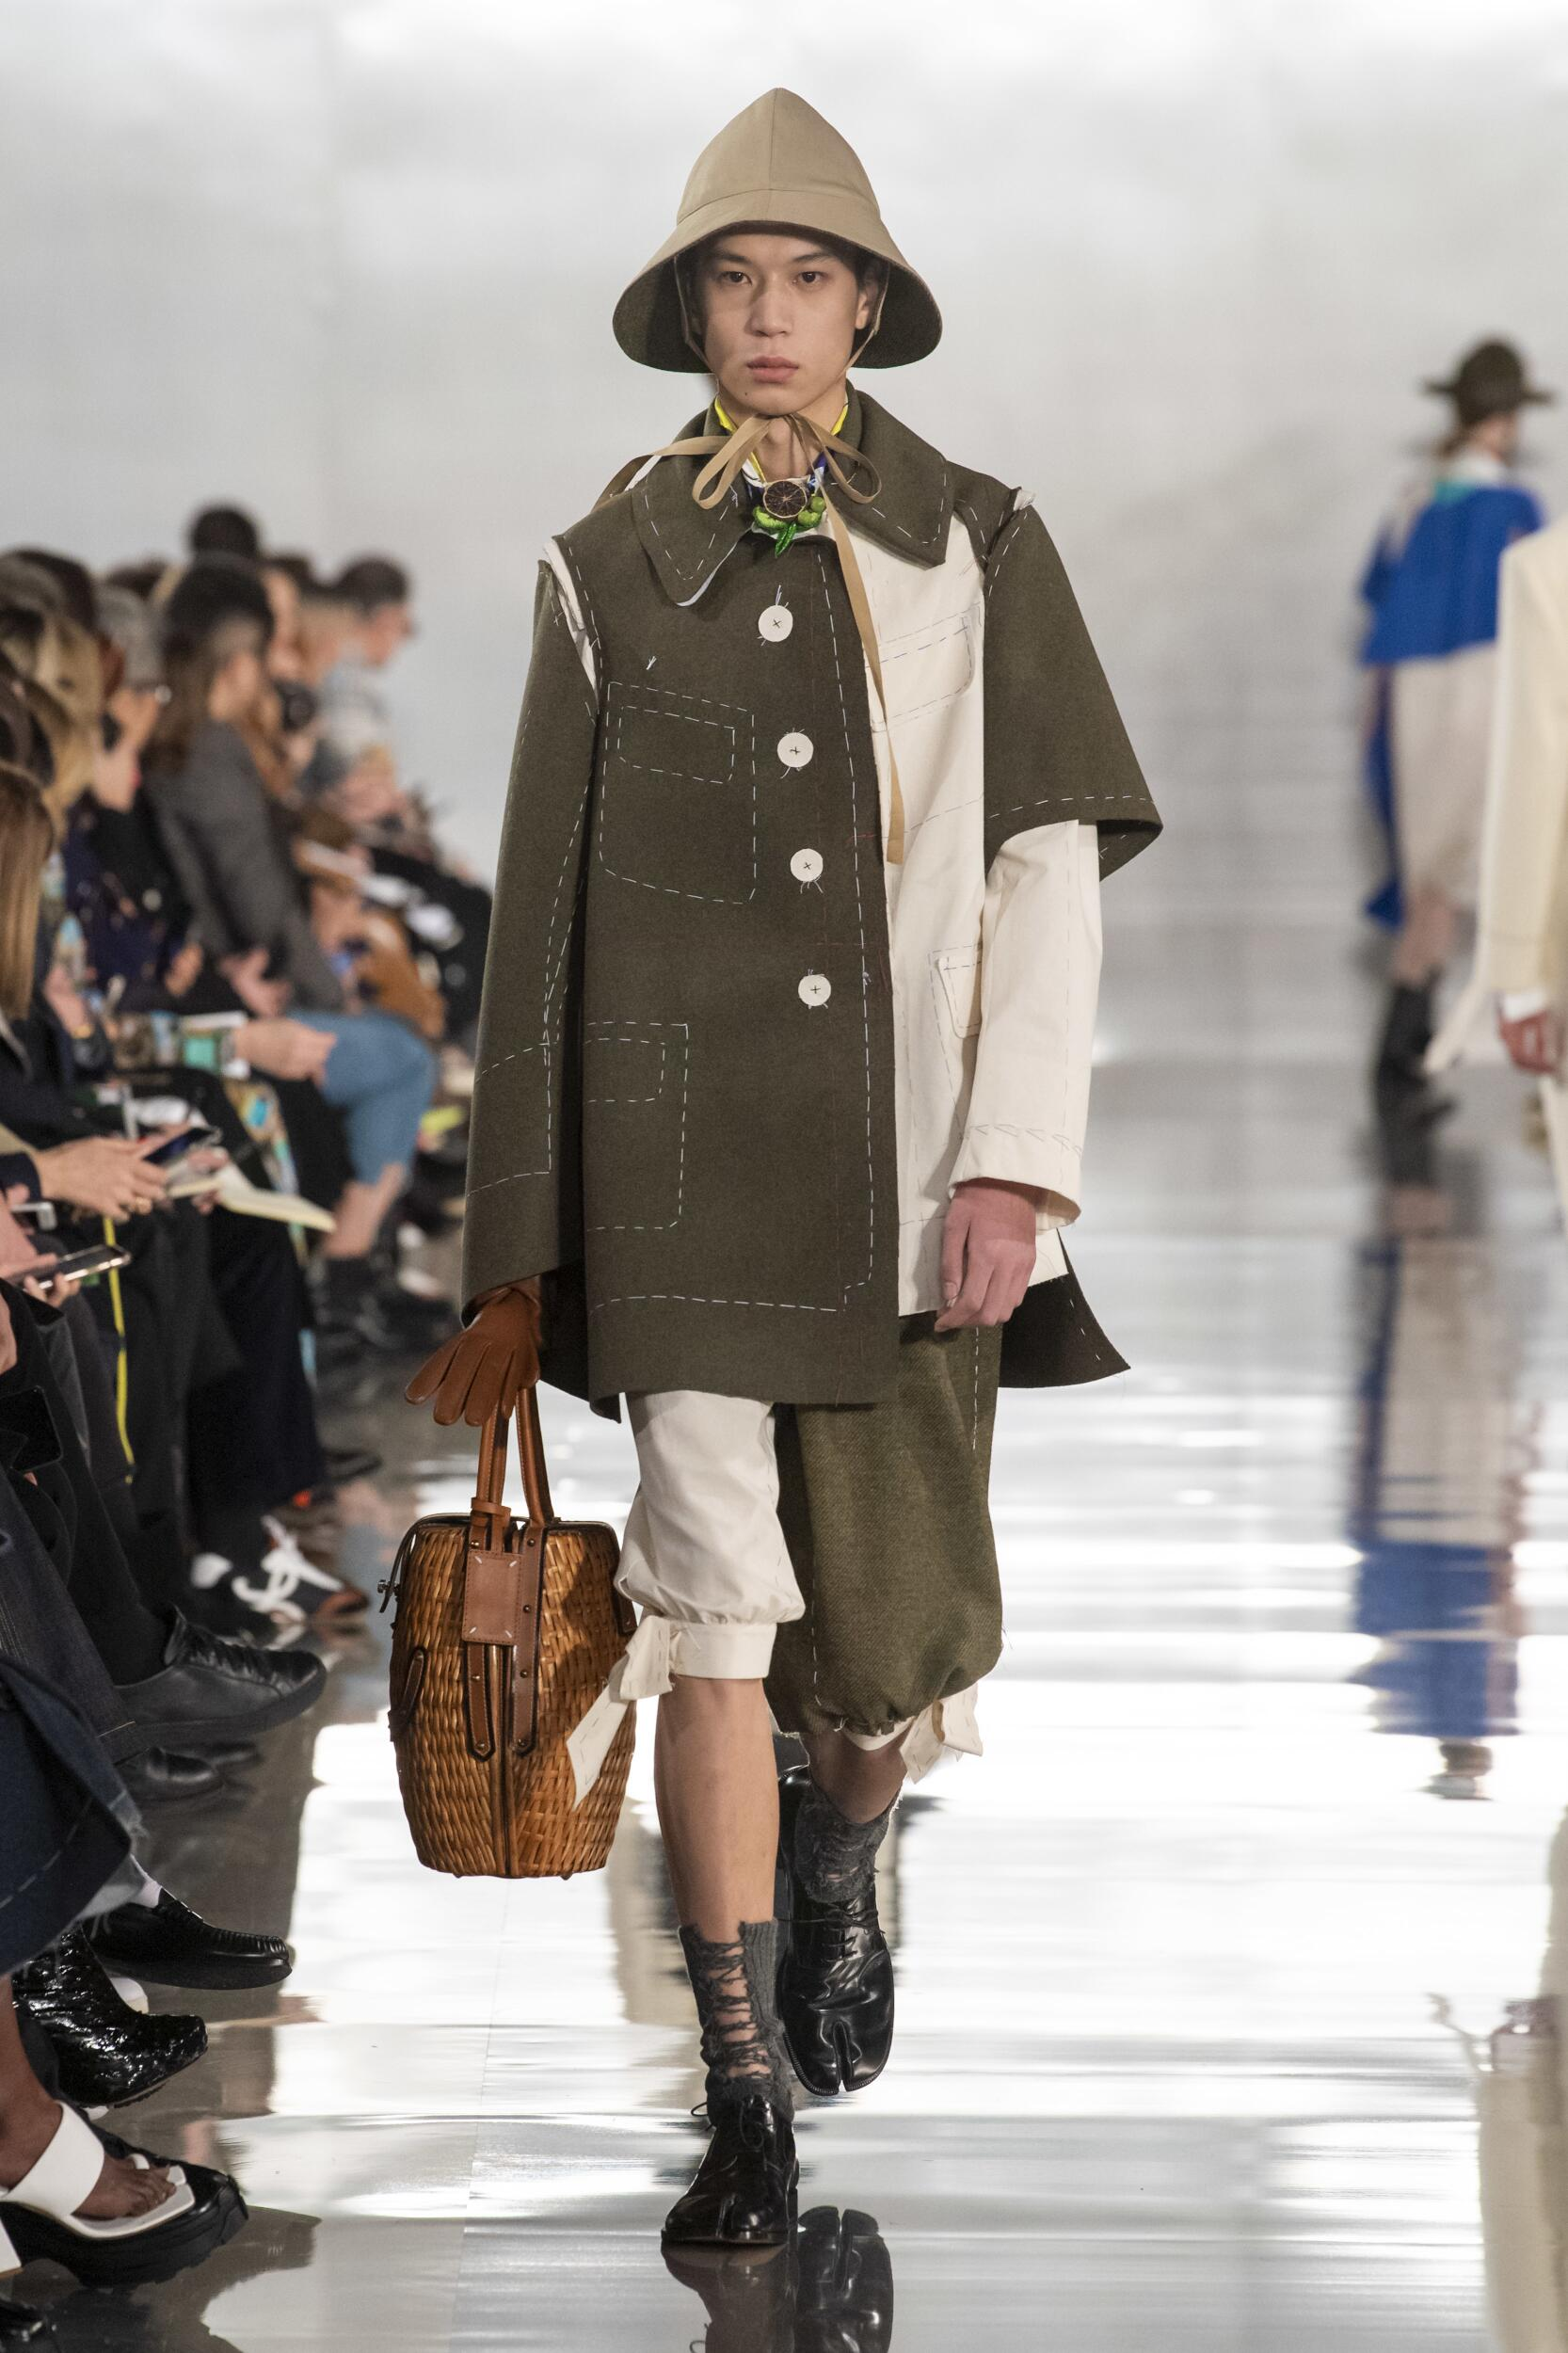 2020 Catwalk Maison Margiela Man Fashion Show Winter